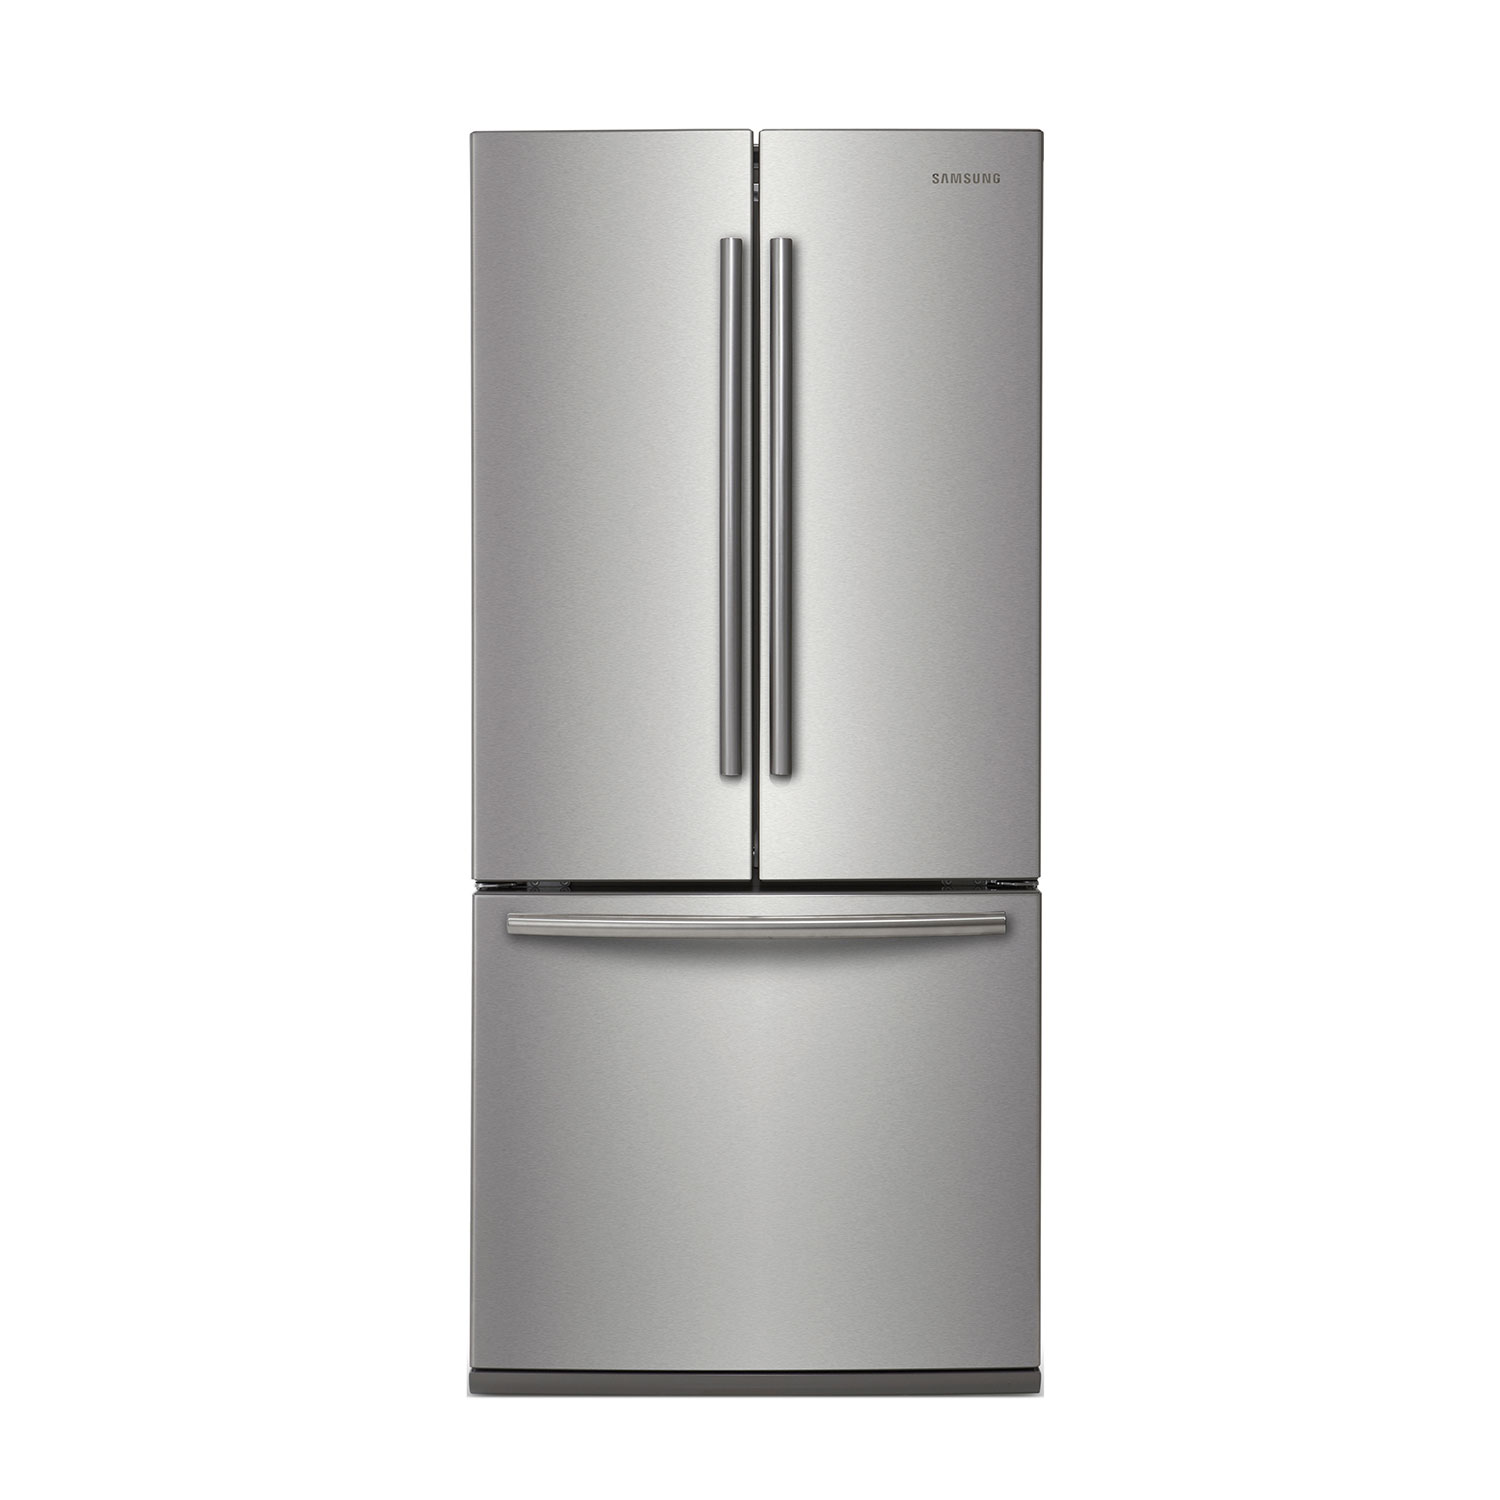 Samsung 30 216 Cu Ft French Door Refrigerator With Led Lighting Stainless Steel Kitchen Wiring Code Canada Refrigerators Best Buy